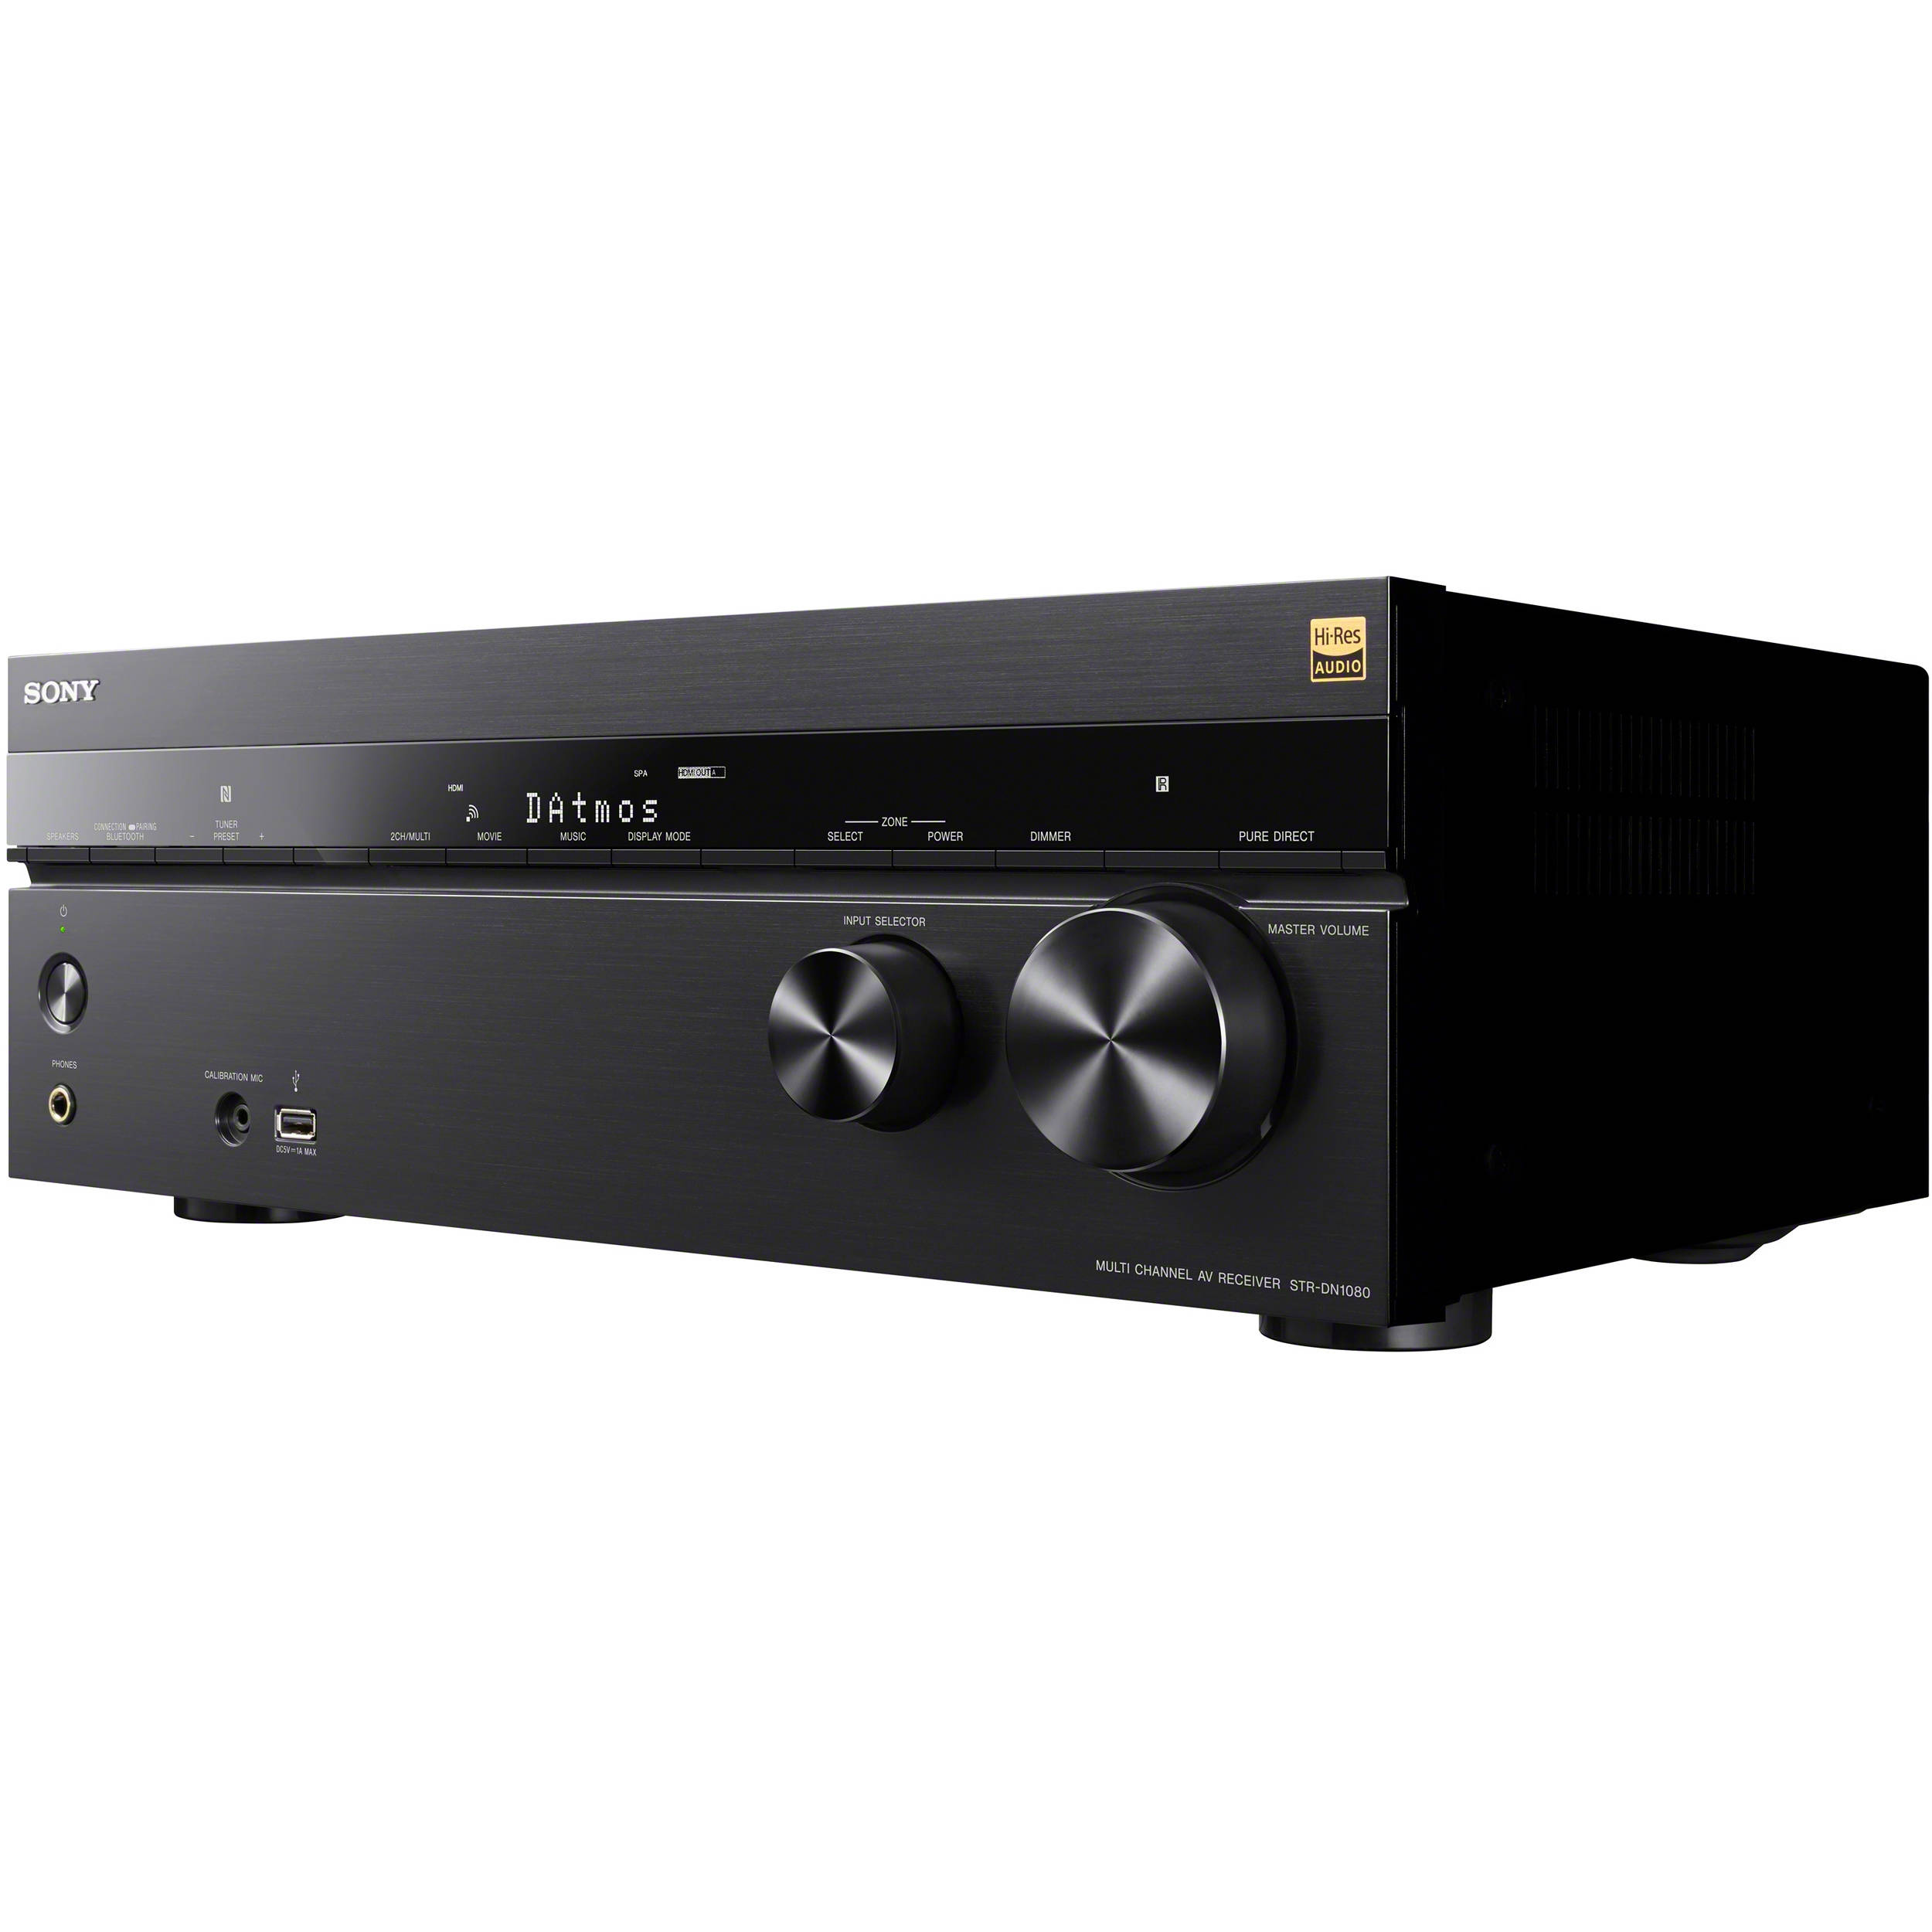 9 Items Sony STR-DN1080 7.2-Channel Home Theater AV Receiver Bundled with Active Subwoofer and Seven Sony Speakers